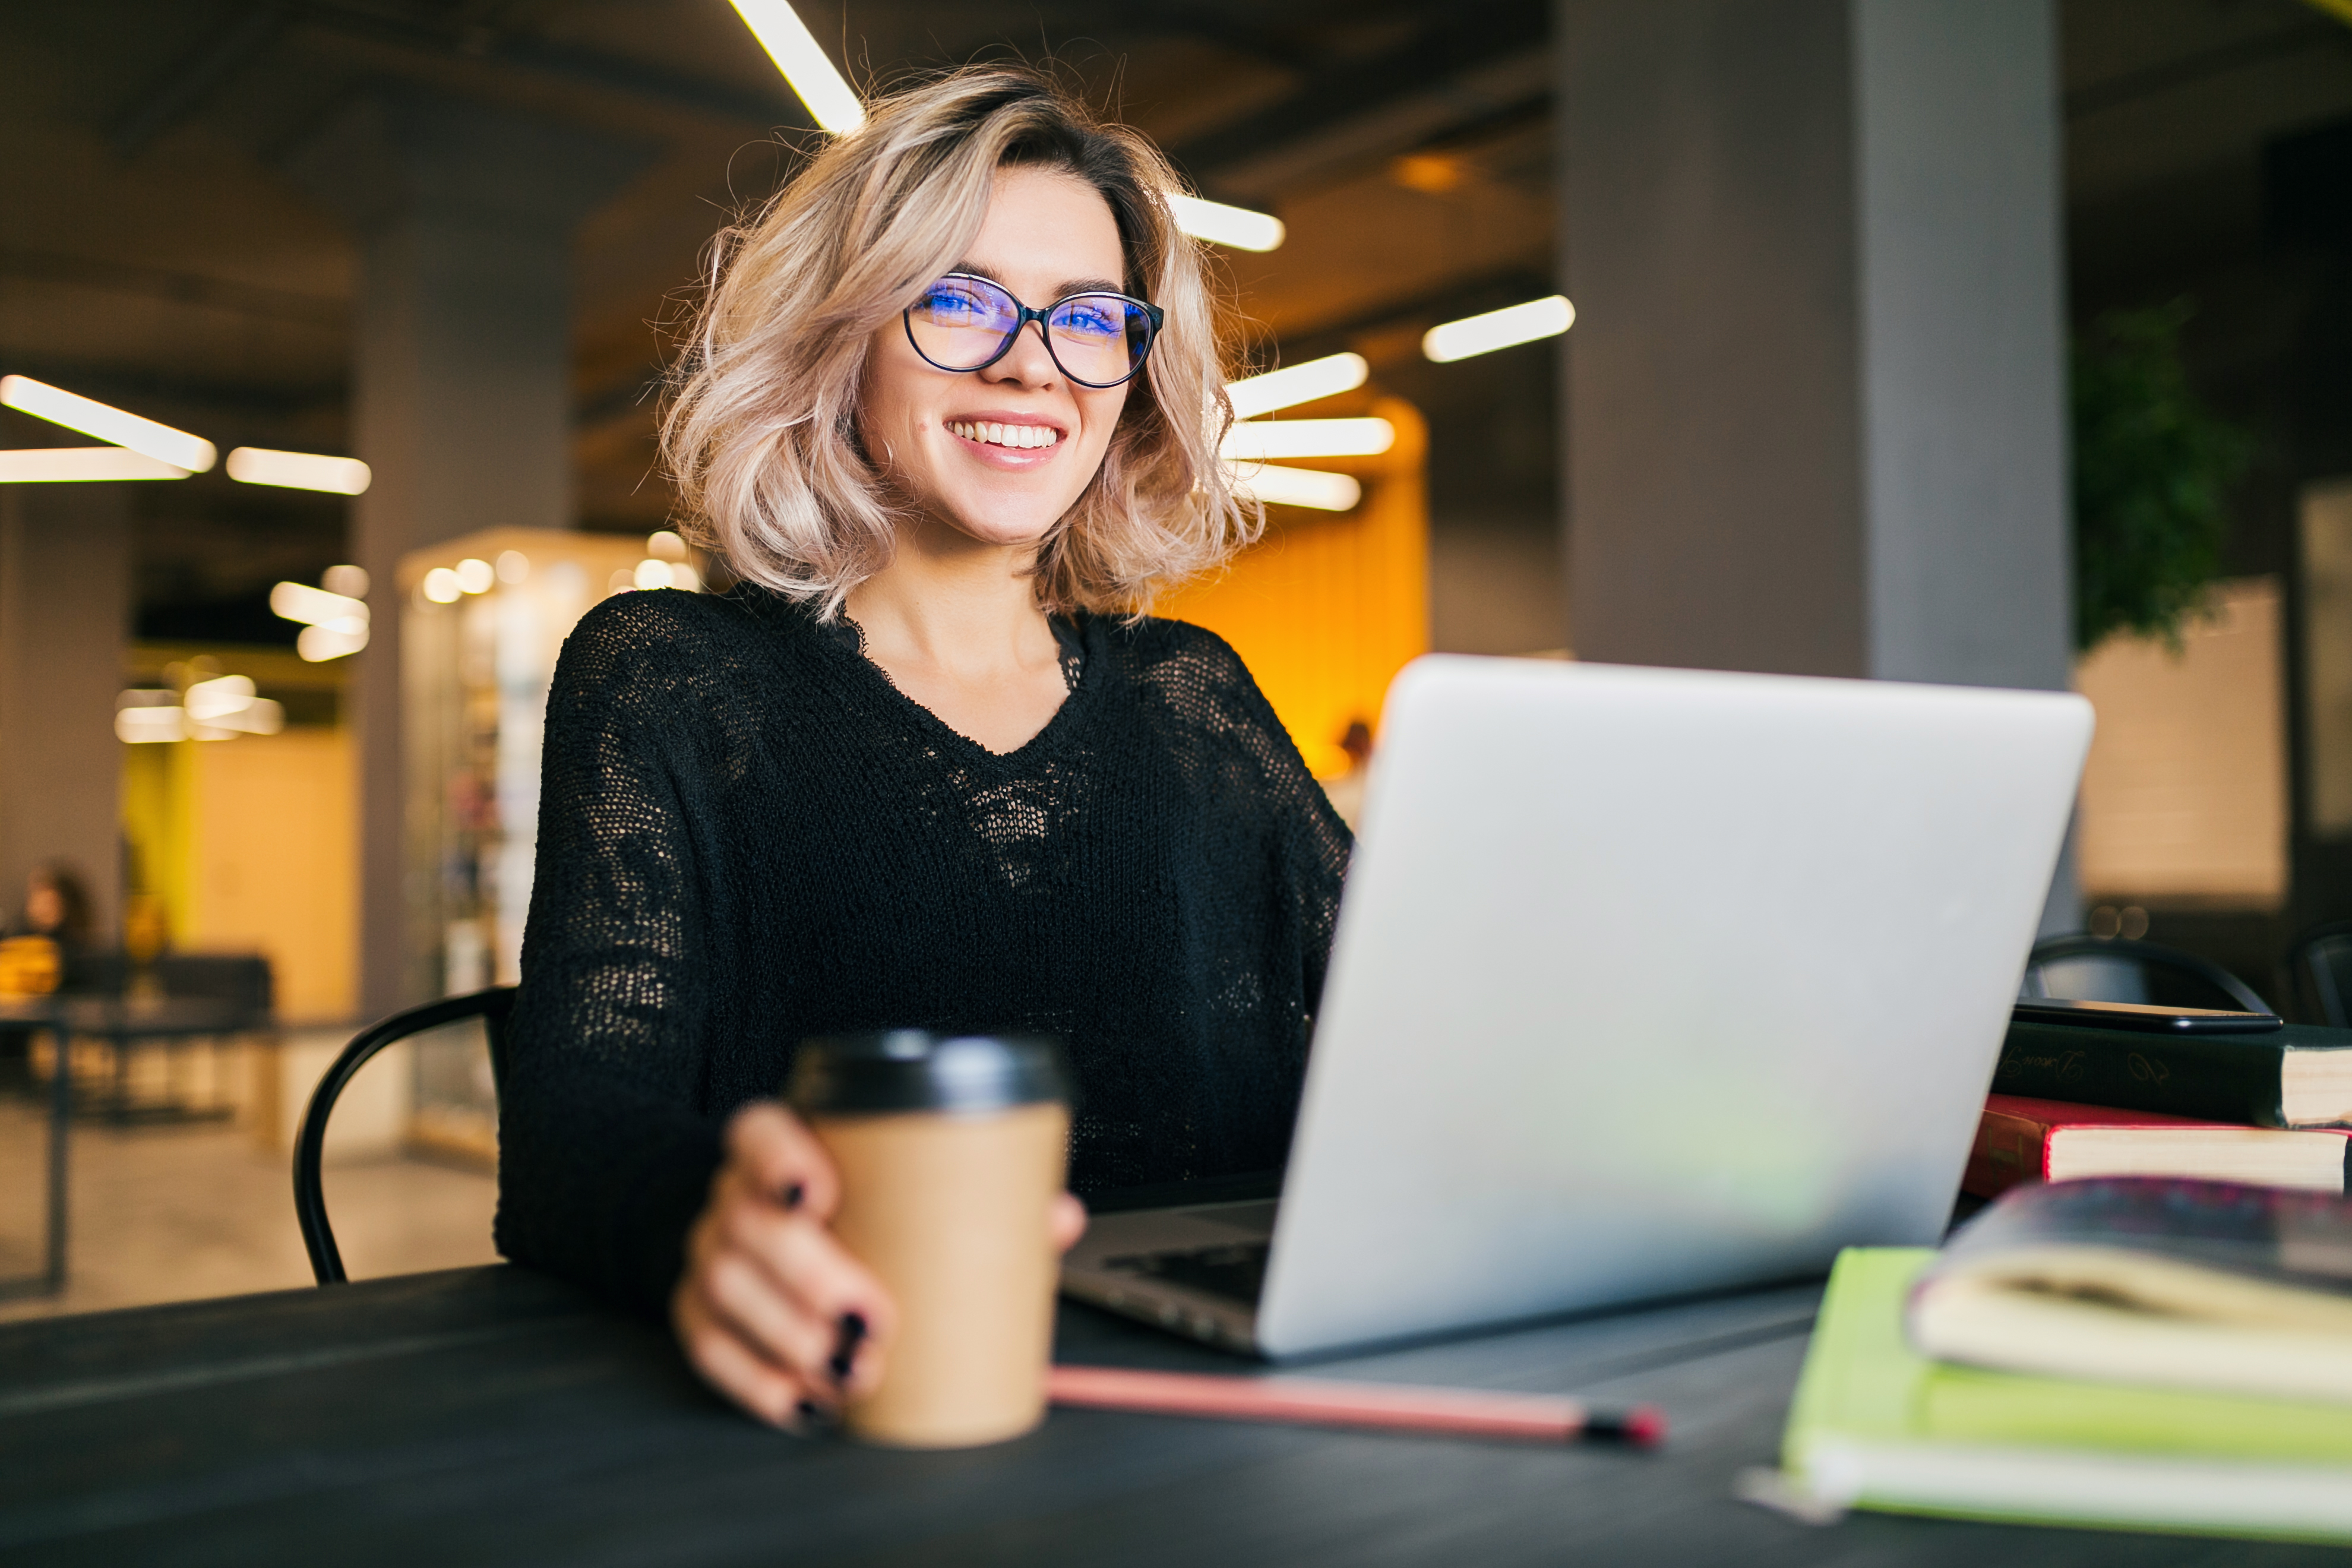 portrait-of-young-pretty-woman-sitting-at-table-in-black-shirt-working-on-laptop-in-co-working-office